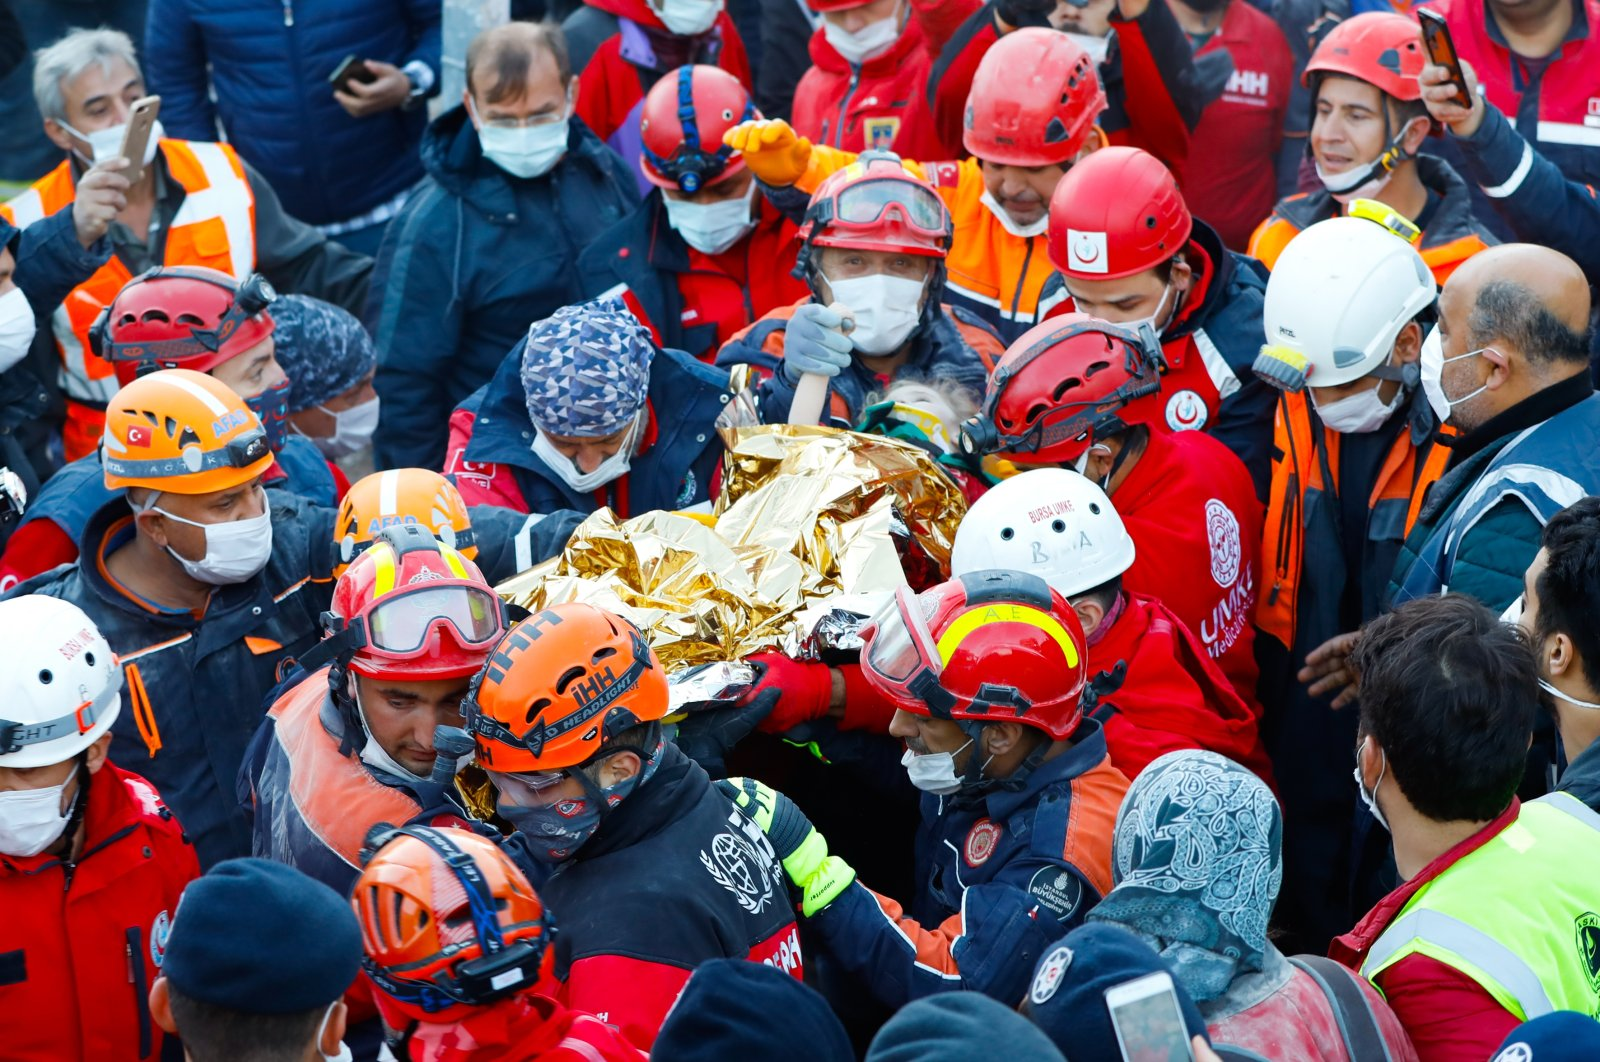 Rescue teams carry 3-year-old Elif Perinçek after she was pulled from the rubble following a 6.6 magnitude earthquake, Izmir, Turkey, Nov. 2, 2020. (AA Photo)